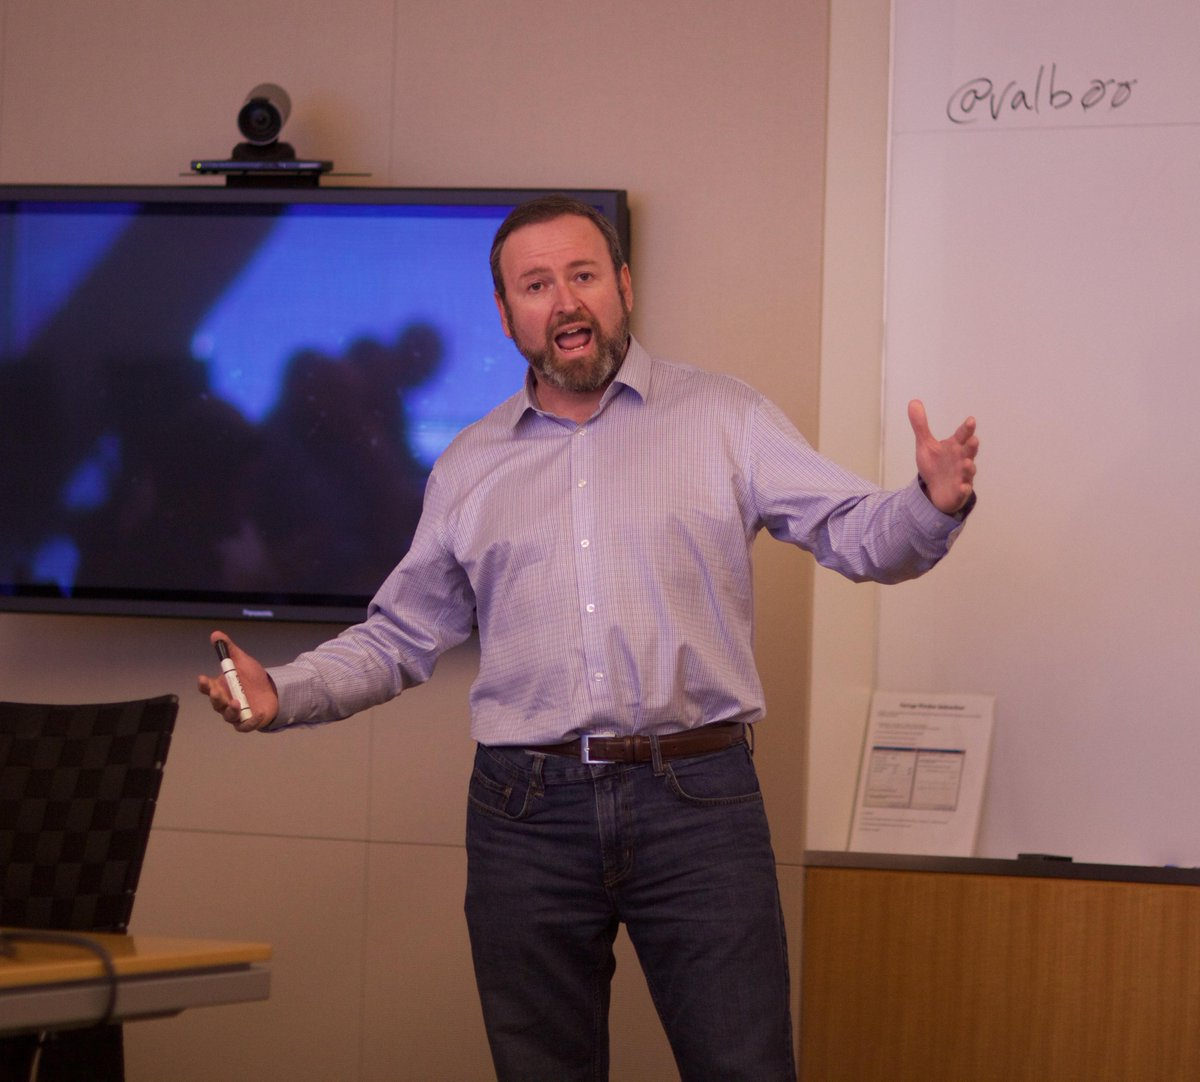 Trust the Canadian to be the comic. @valb00 talking some interesting stuff @netapp #NetAppATeam http://t.co/sHWptNdfRO